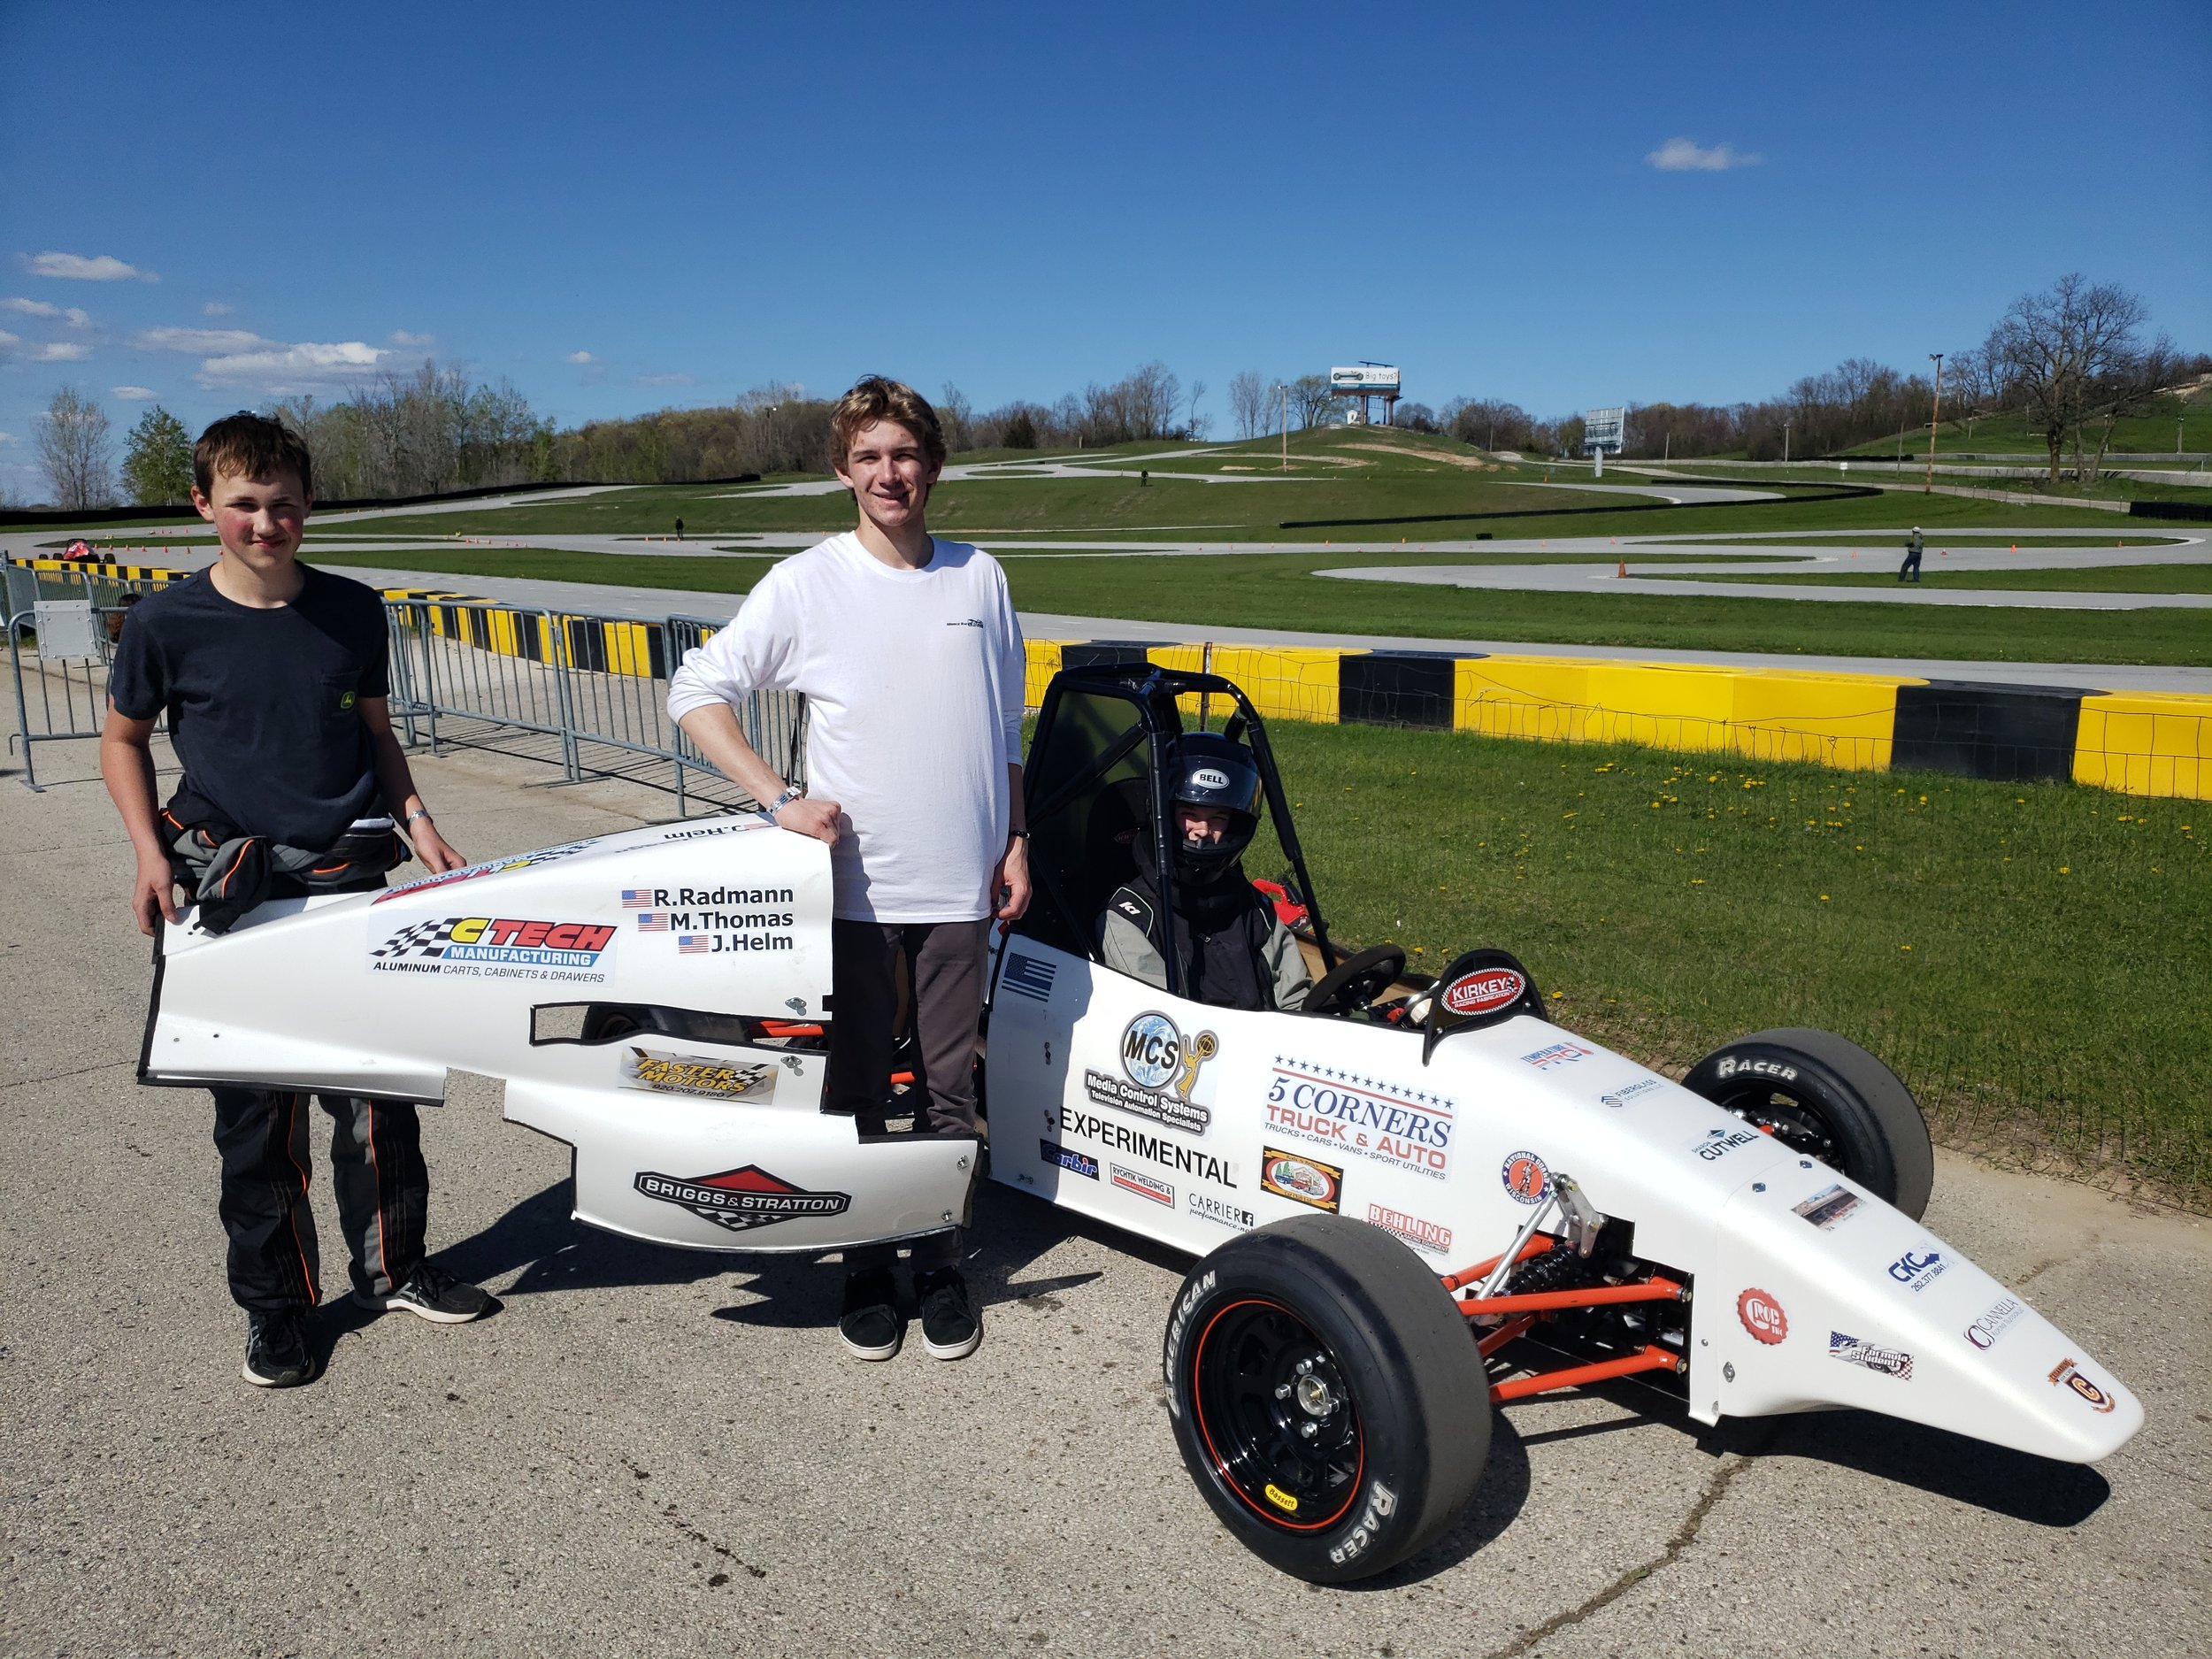 The Cedarburg High School Formula Student USA Team